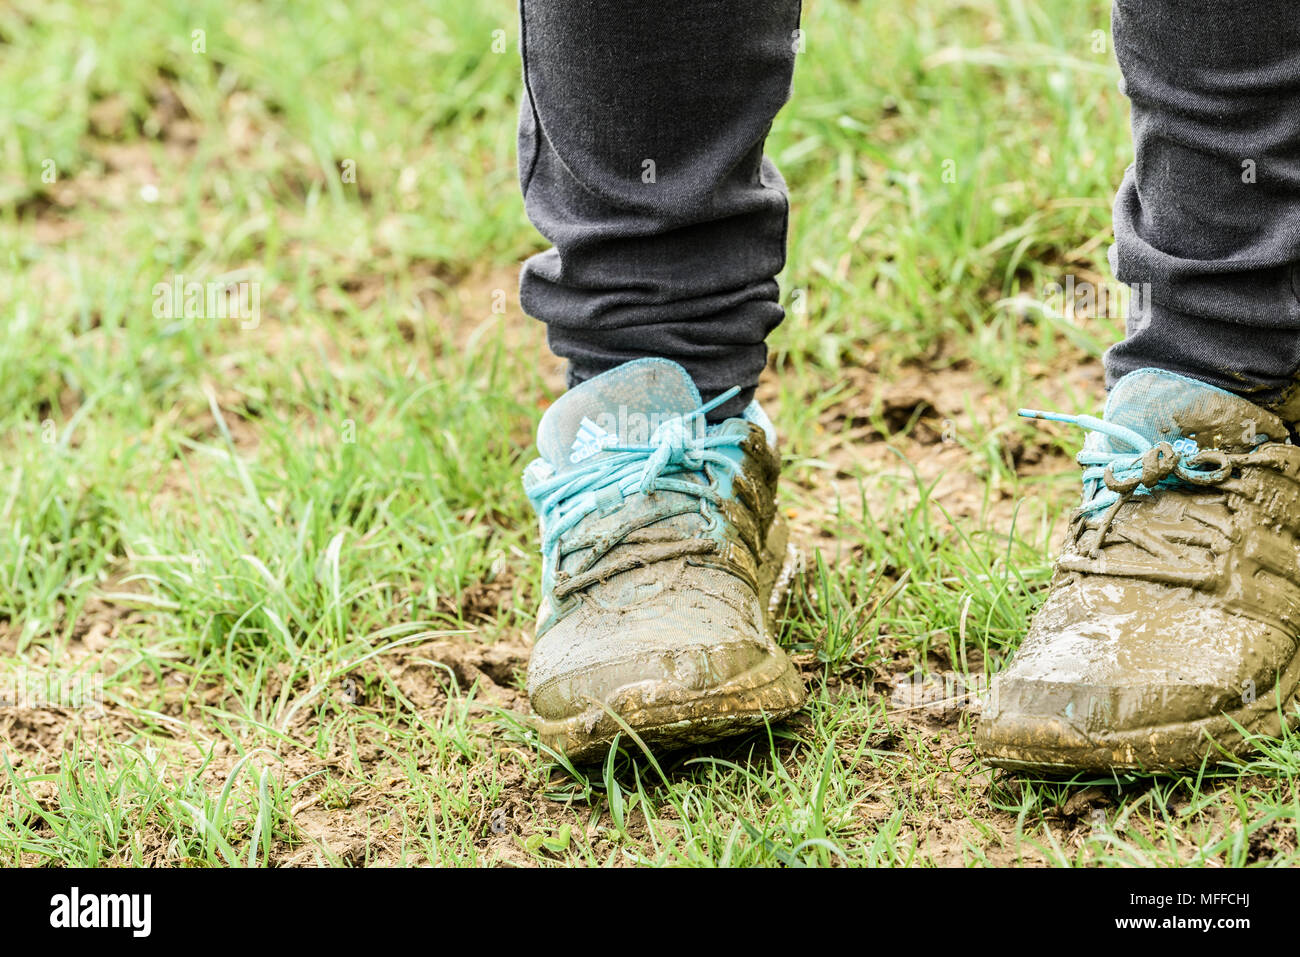 On a wet field in the East Midlands countryside of England, an unfortunate child has muddied the blue shoes which are his pride and joy. - Stock Image